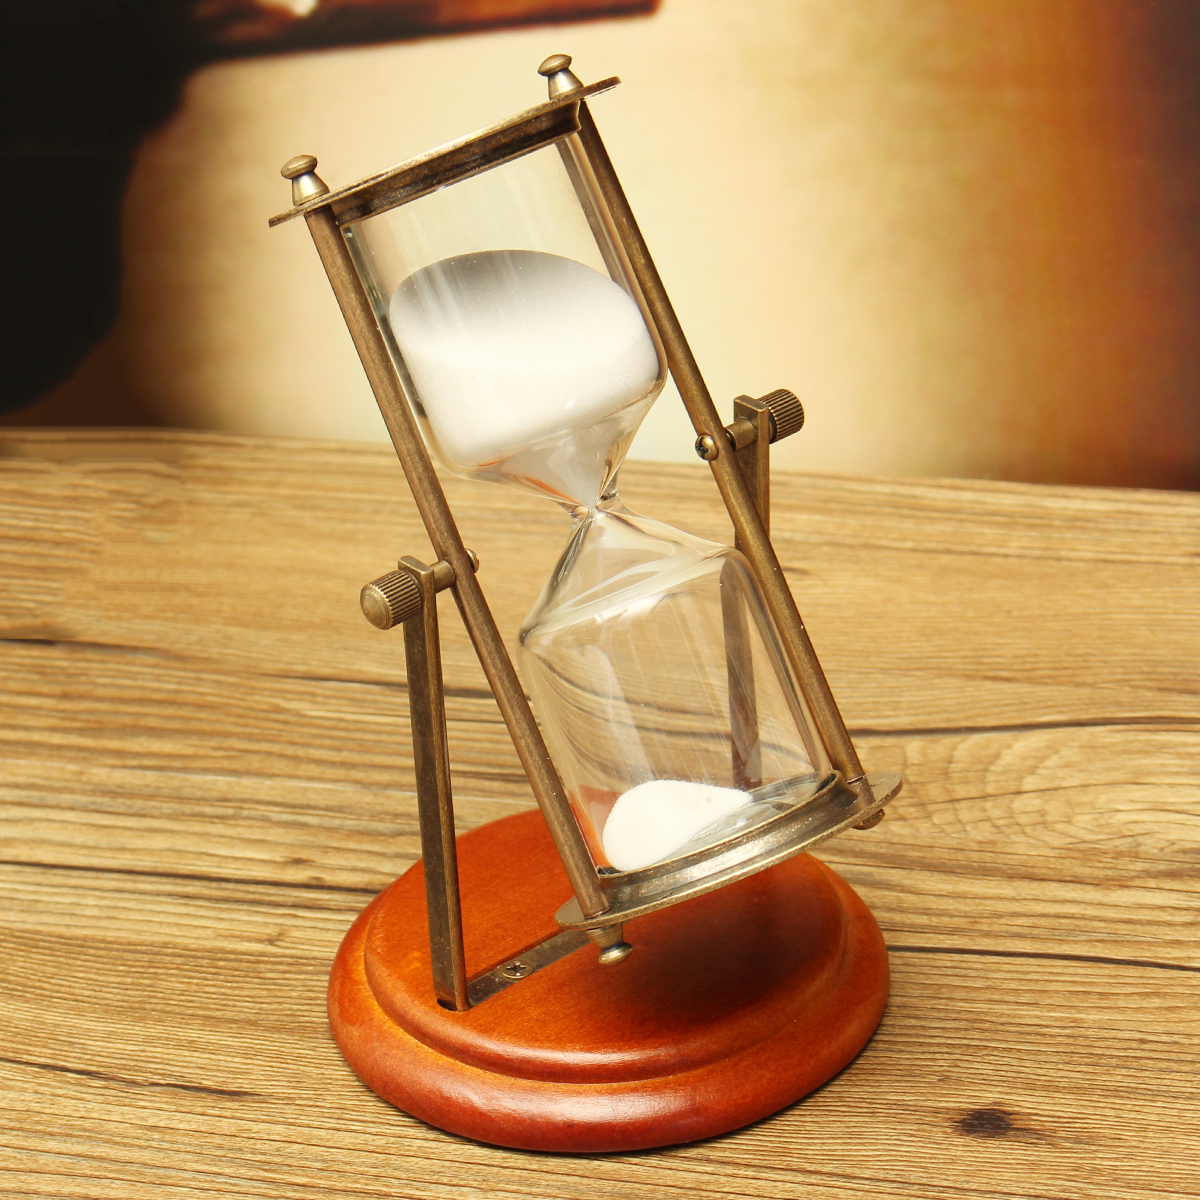 15 Minutes Rolating Hourglass Sandglass Sand Clock Timer Table Home Decoration Desktop Ornament